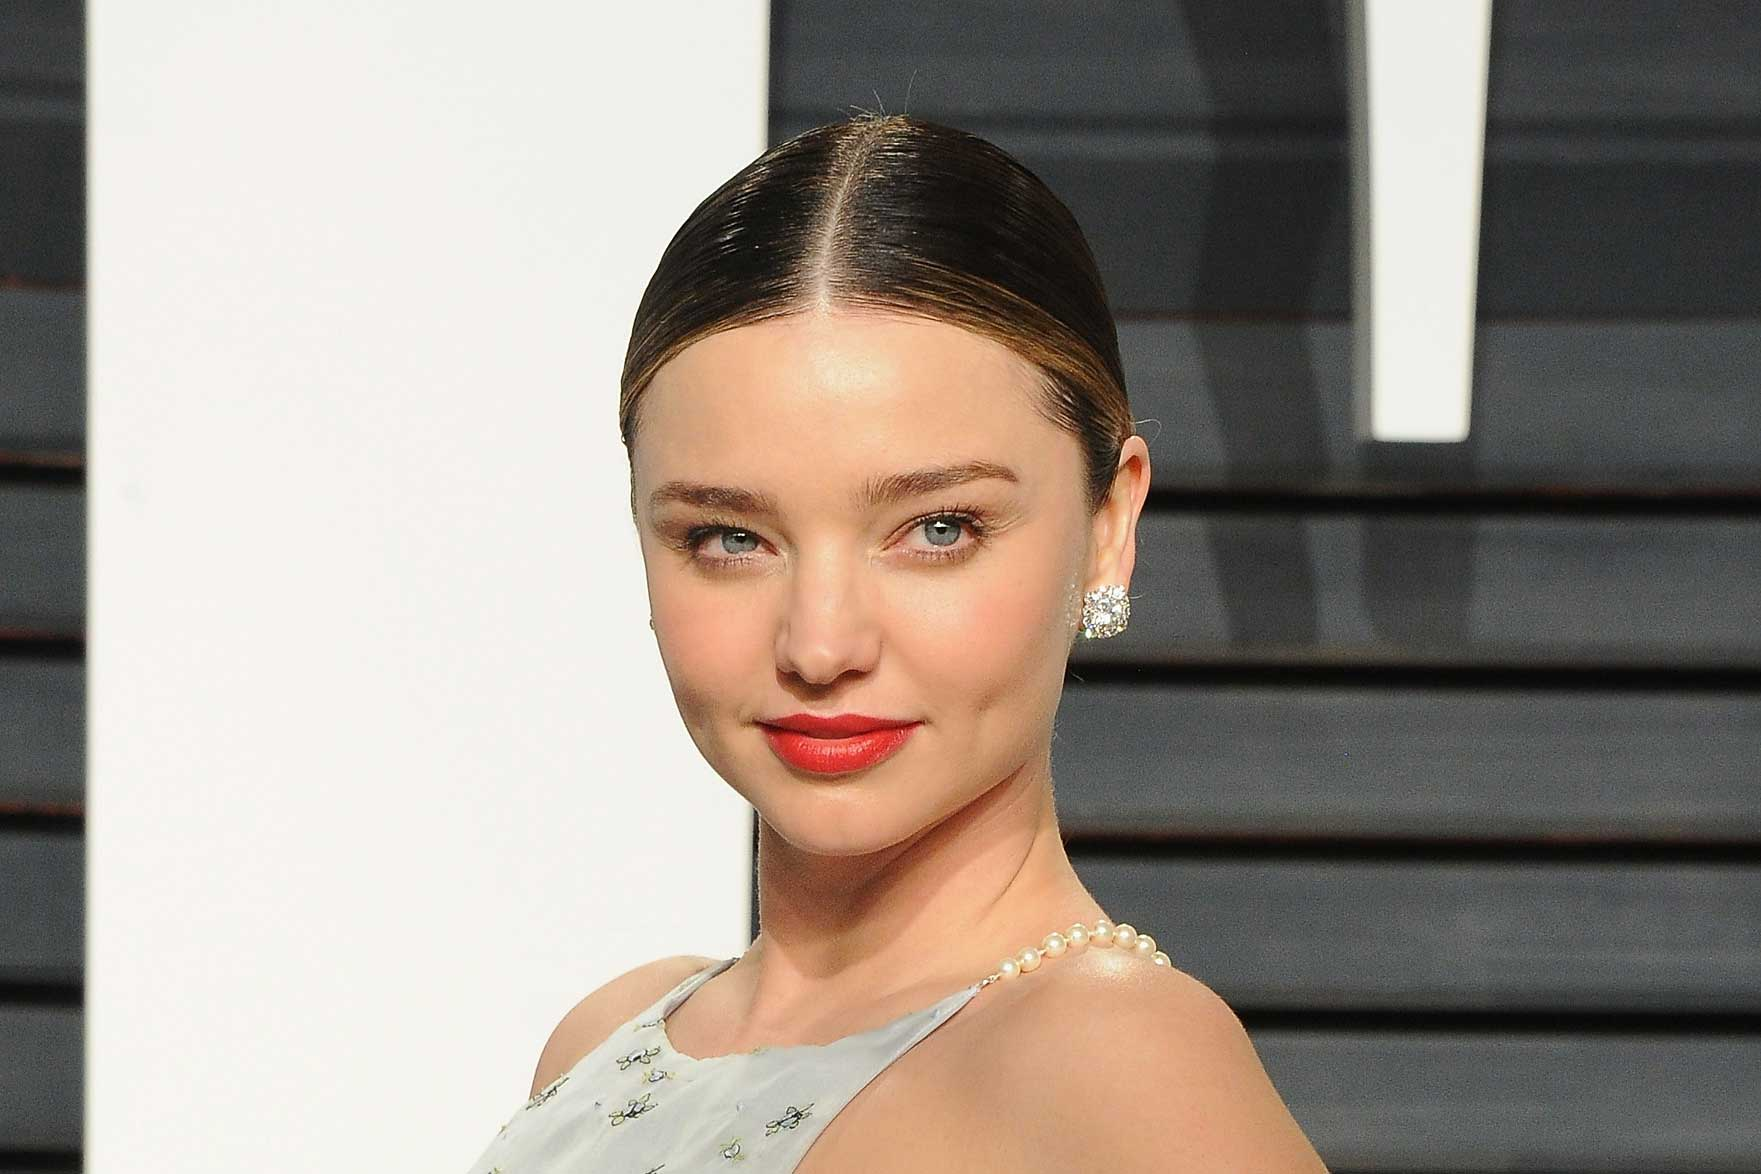 Miranda Kerr Top Model Pic - Miranda Kerr Net Worth, Pics, Wallpapers, Career and Biography